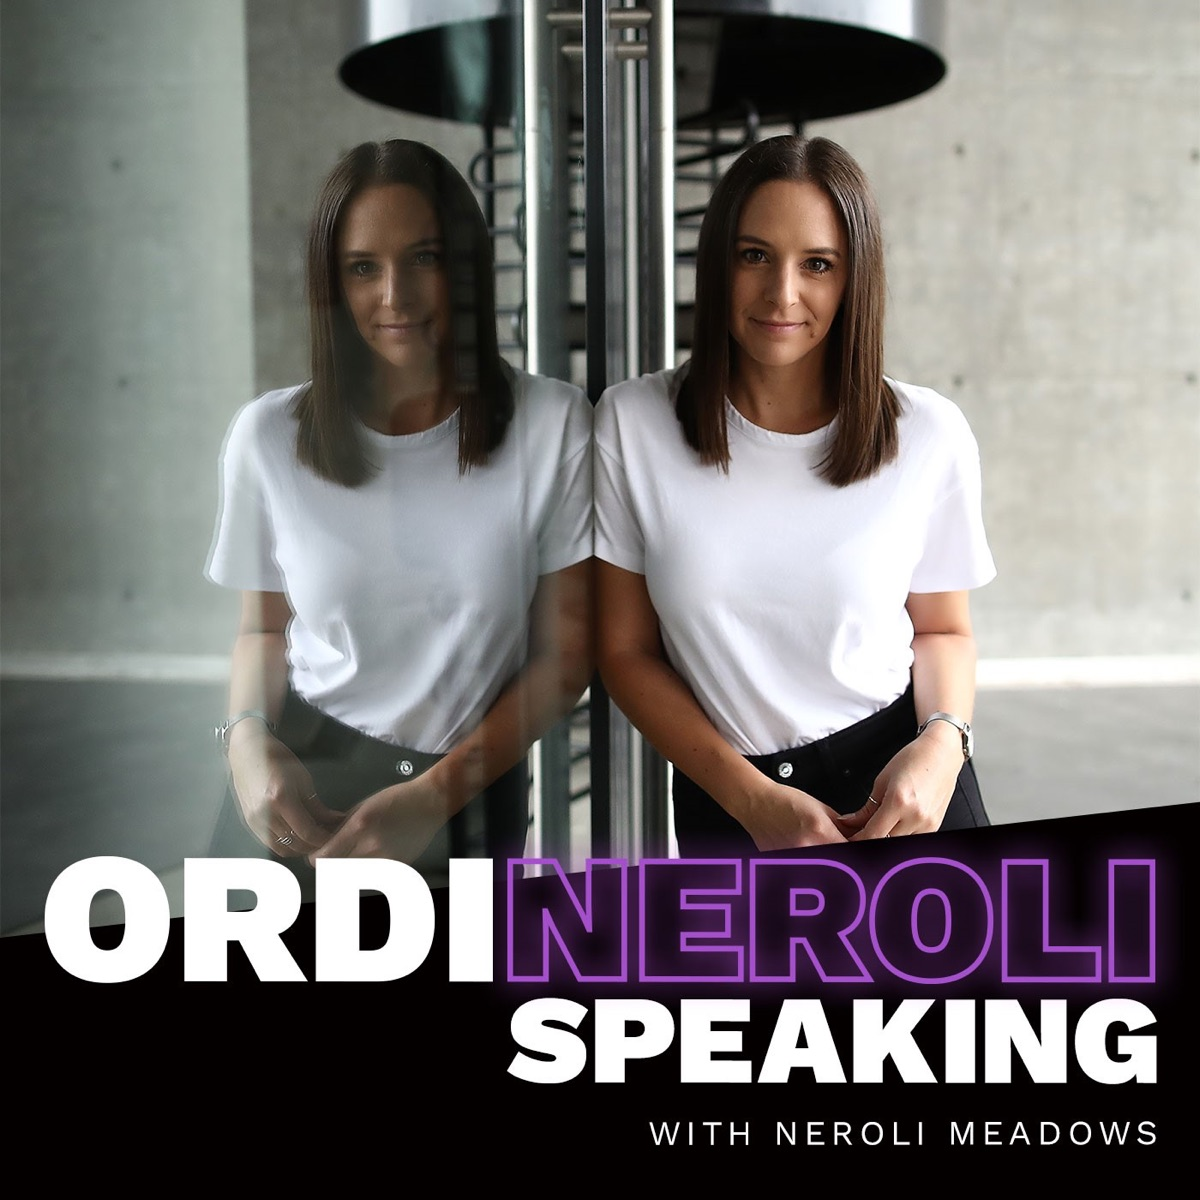 Natalie Medhurst - Ordineroli Speaking